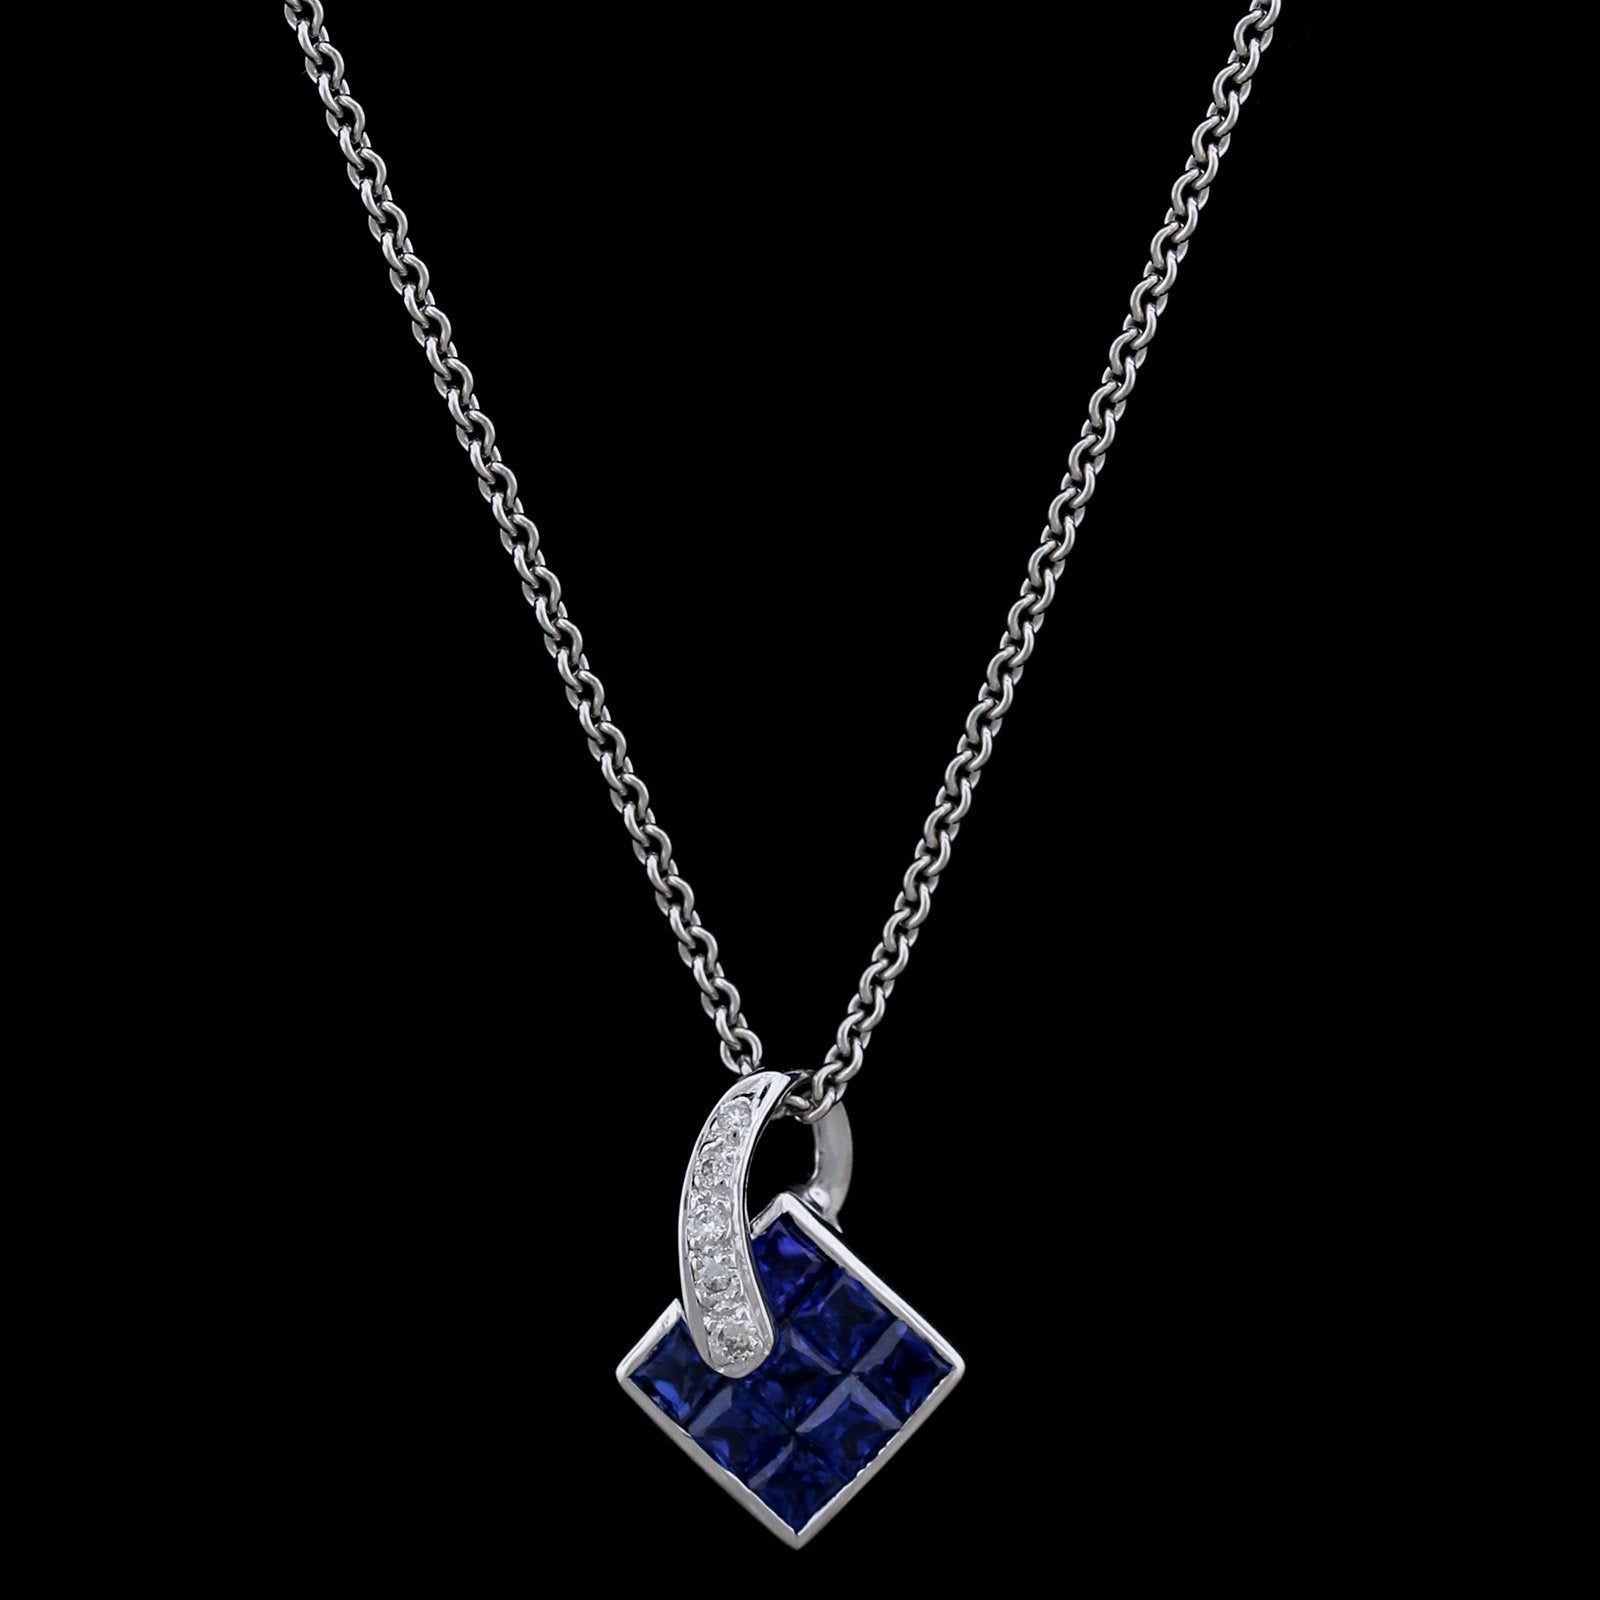 18K White Gold Estate Sapphire and Diamond Pendant